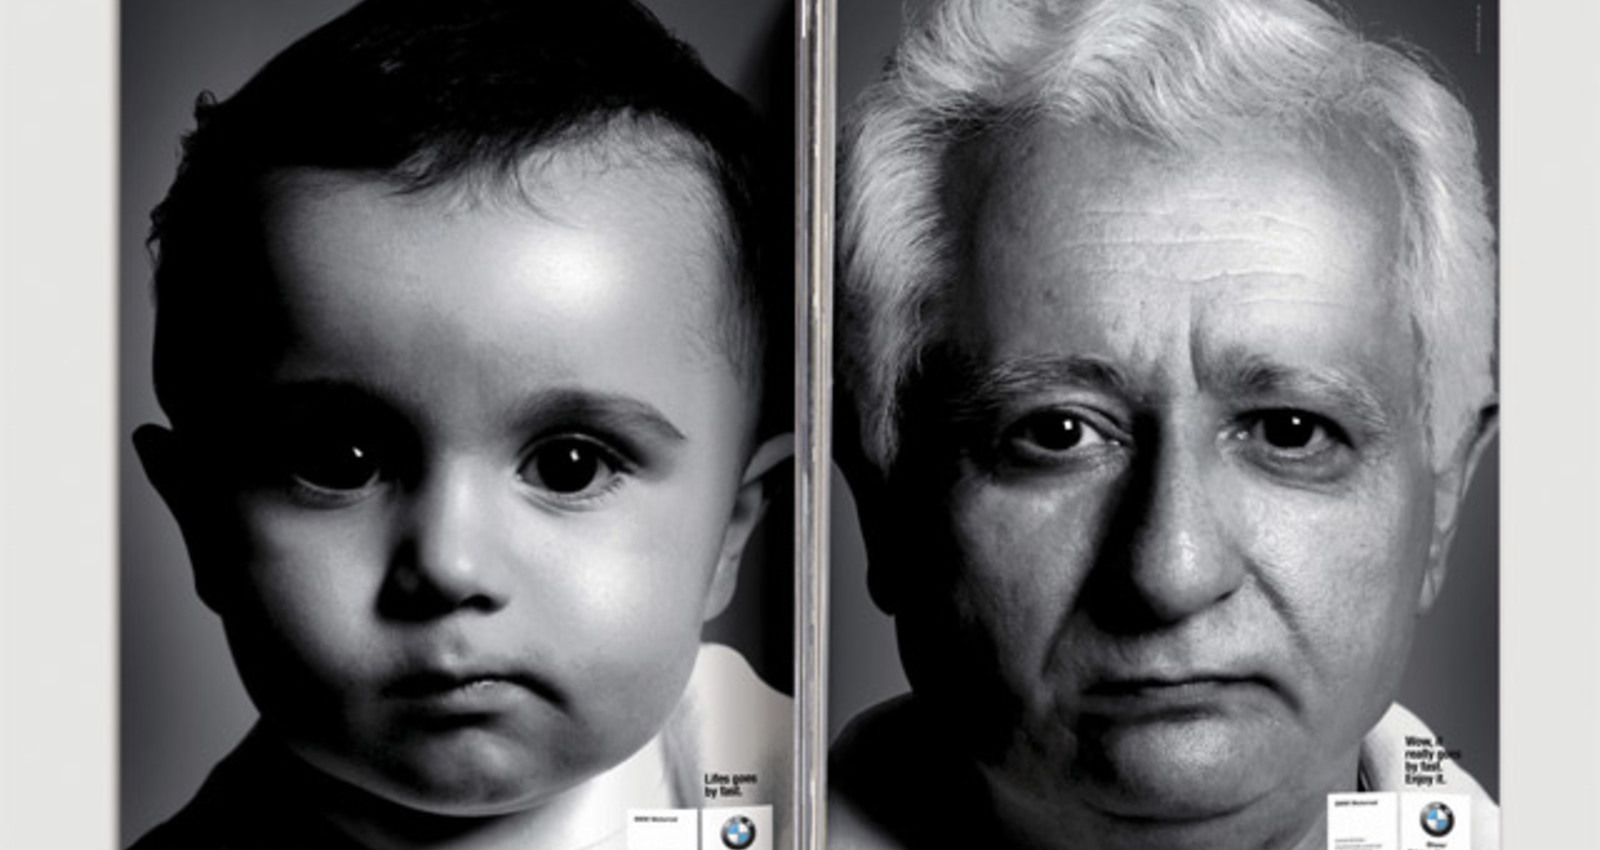 Baby/Old Man